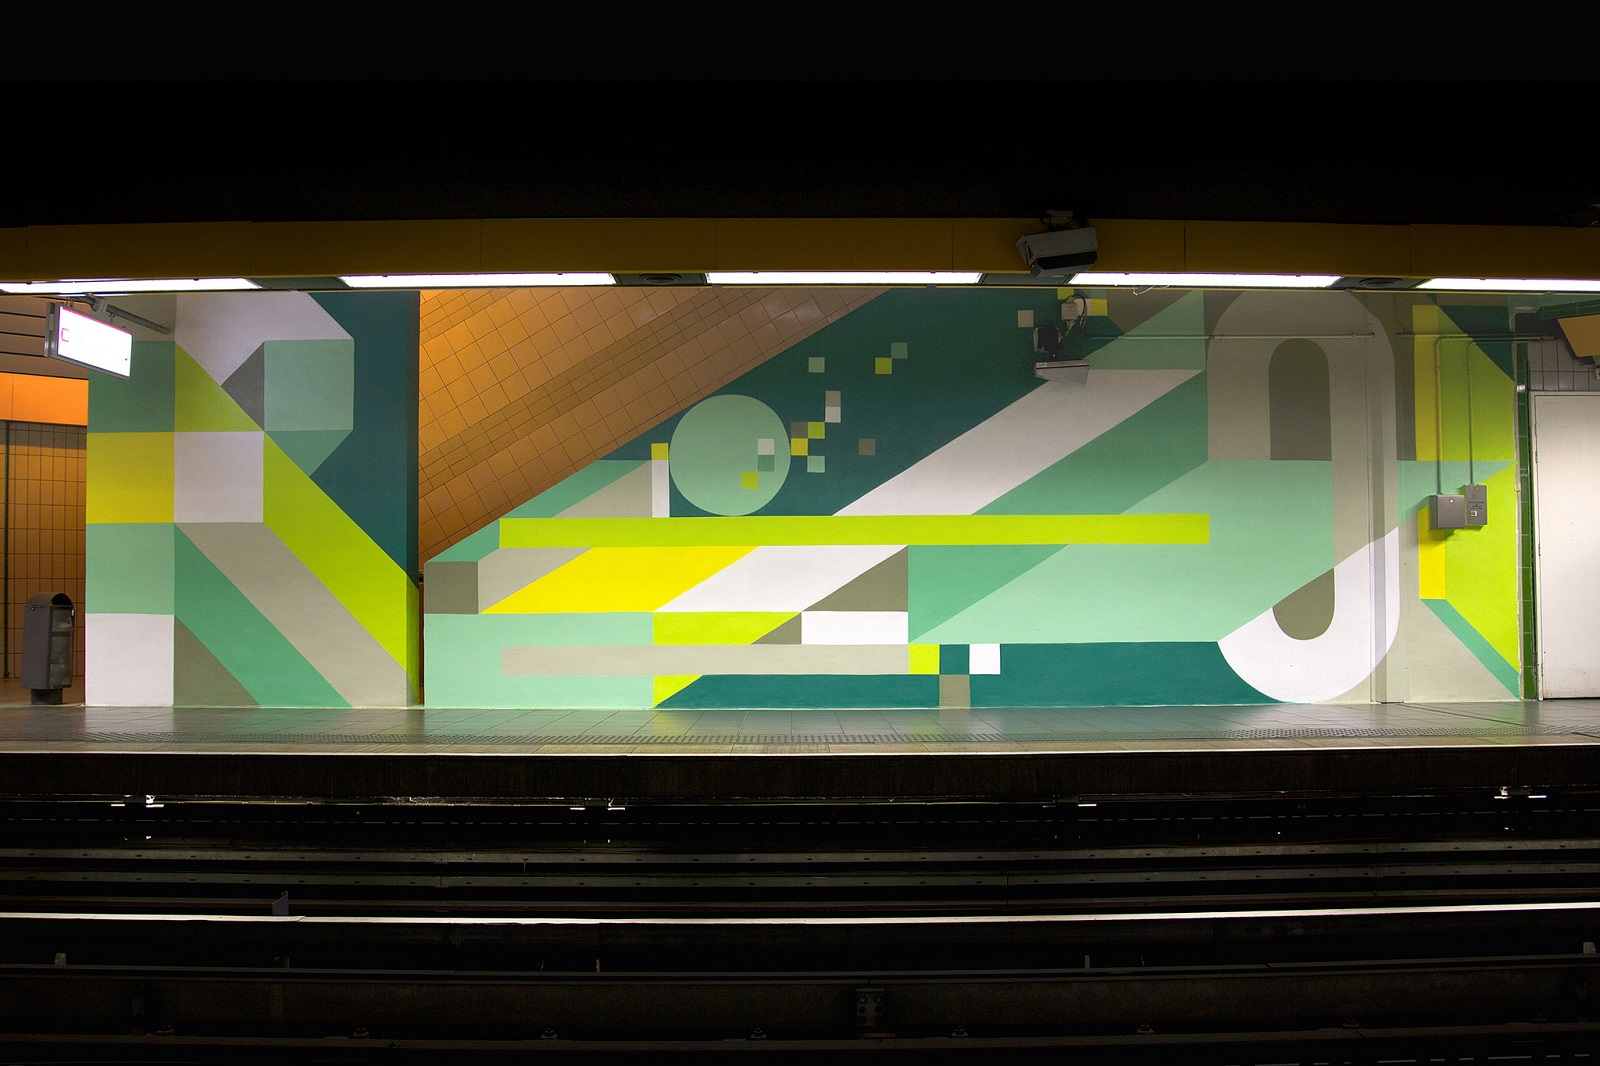 nelio-new-mural-at-station-mermoz-in-lyon-02